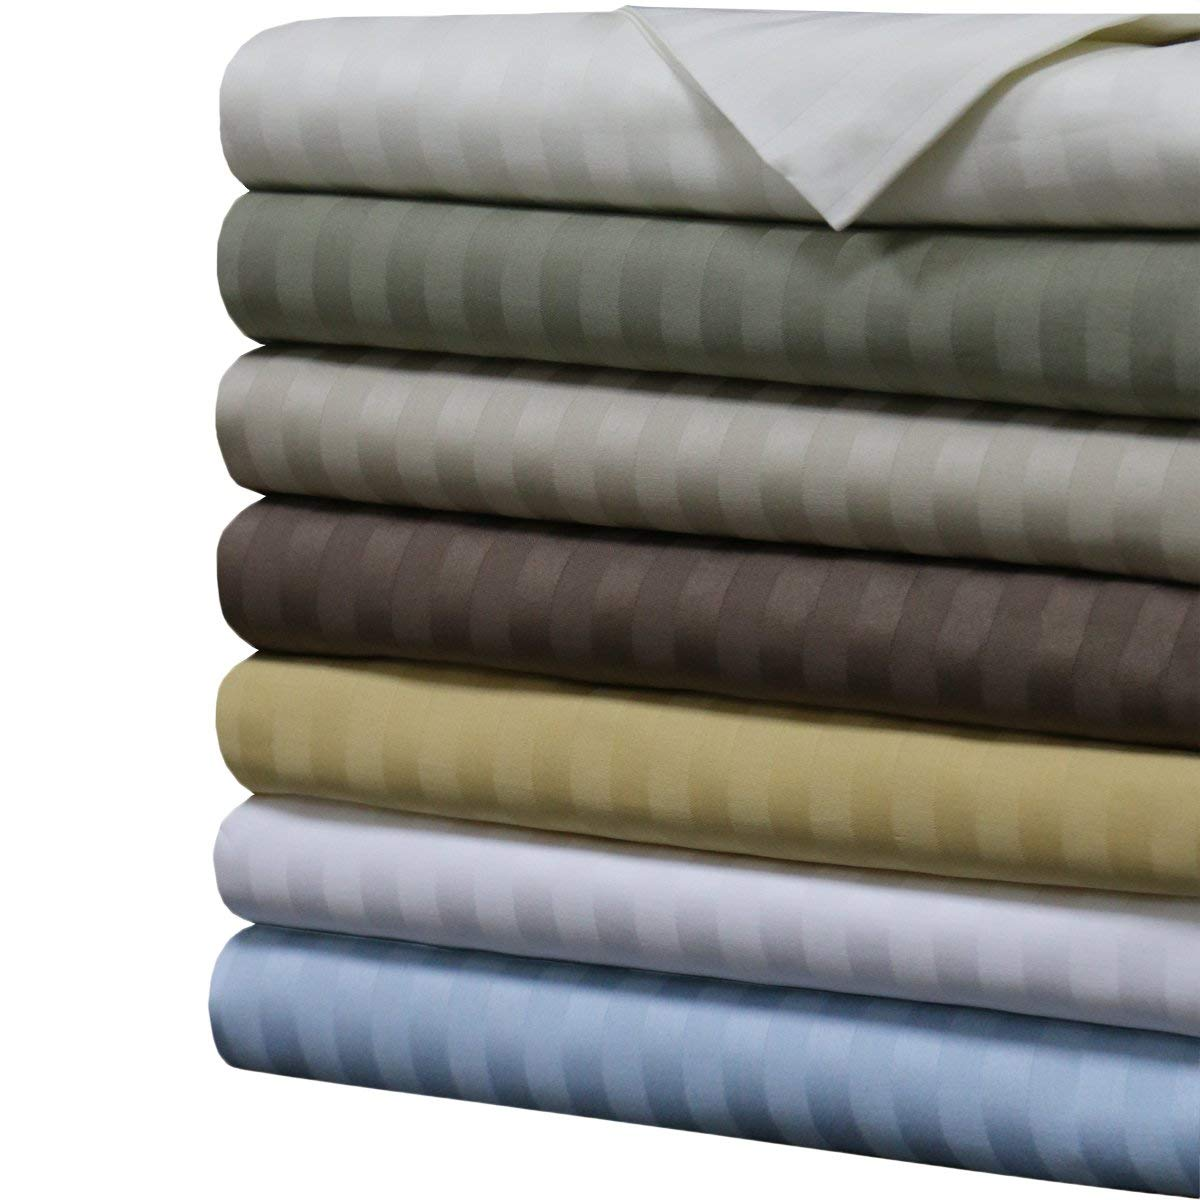 Image of Sheetsnthings Striped 1000 Thread Count Cotton Sheet Set - Best 1000 Thread Count Sheets